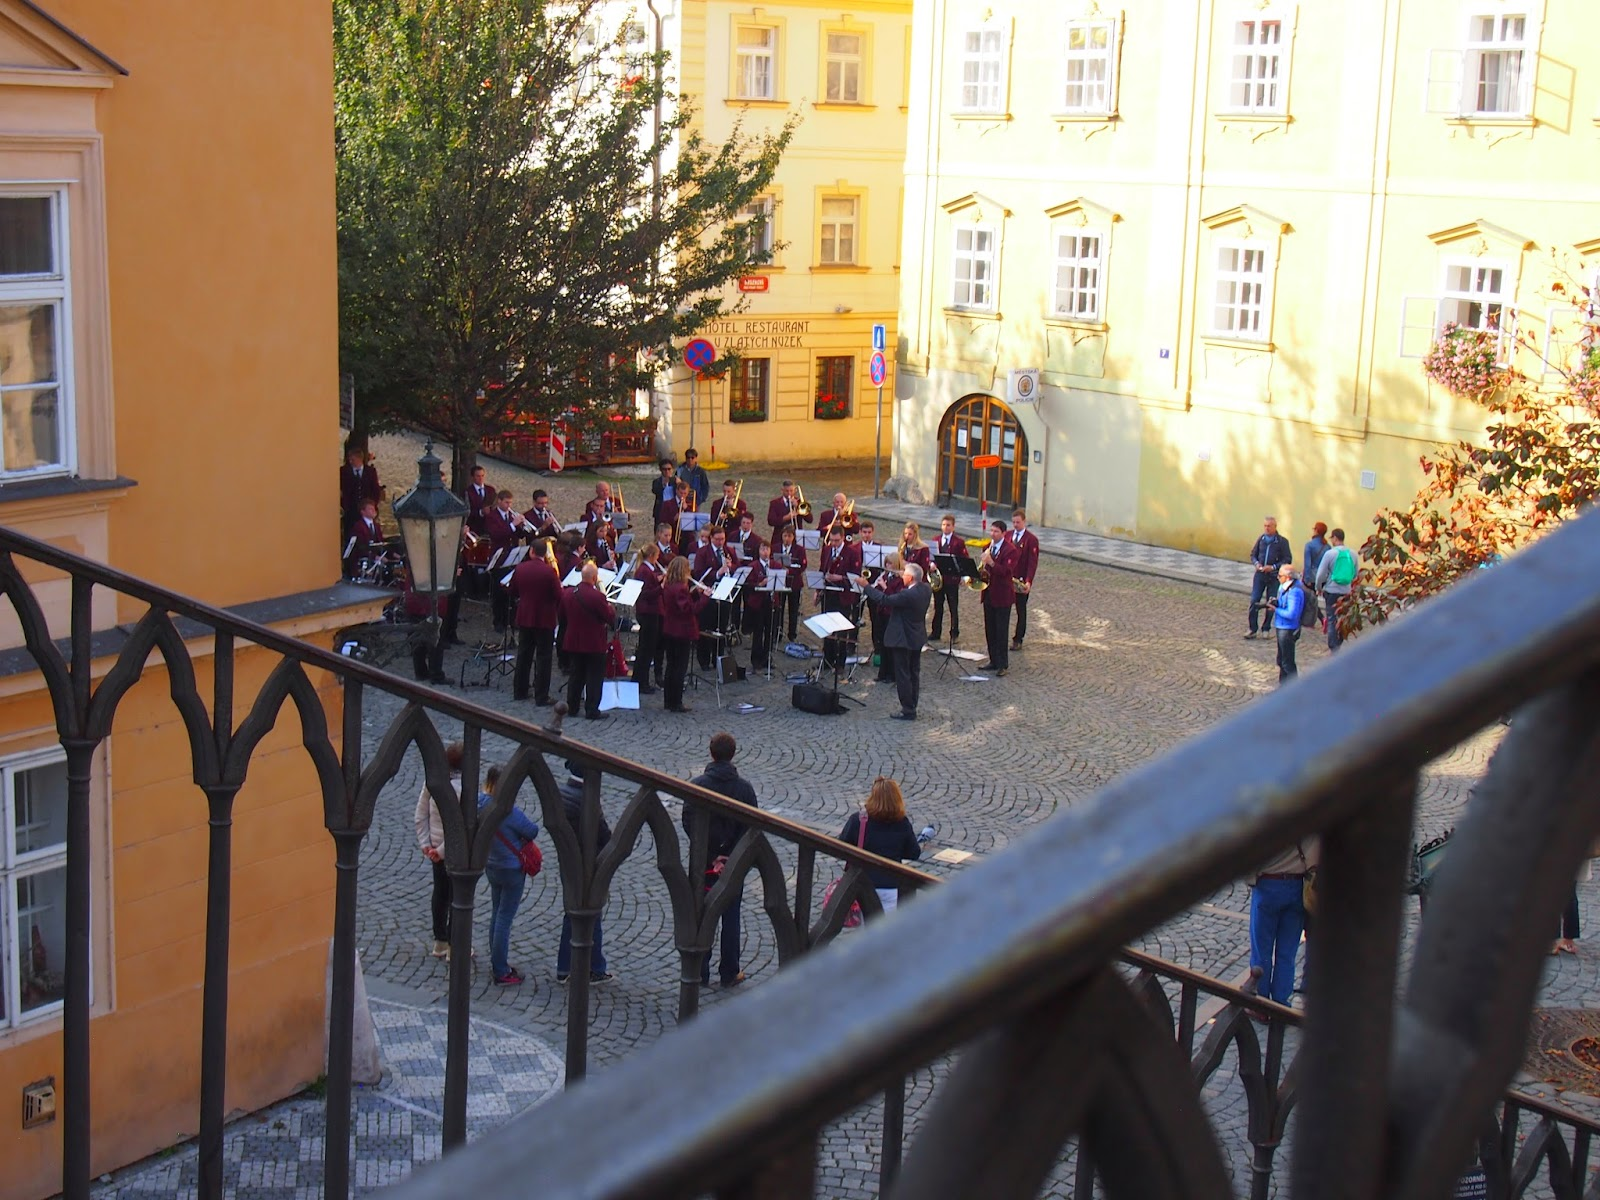 A view of a marching band from the Charles Bridge